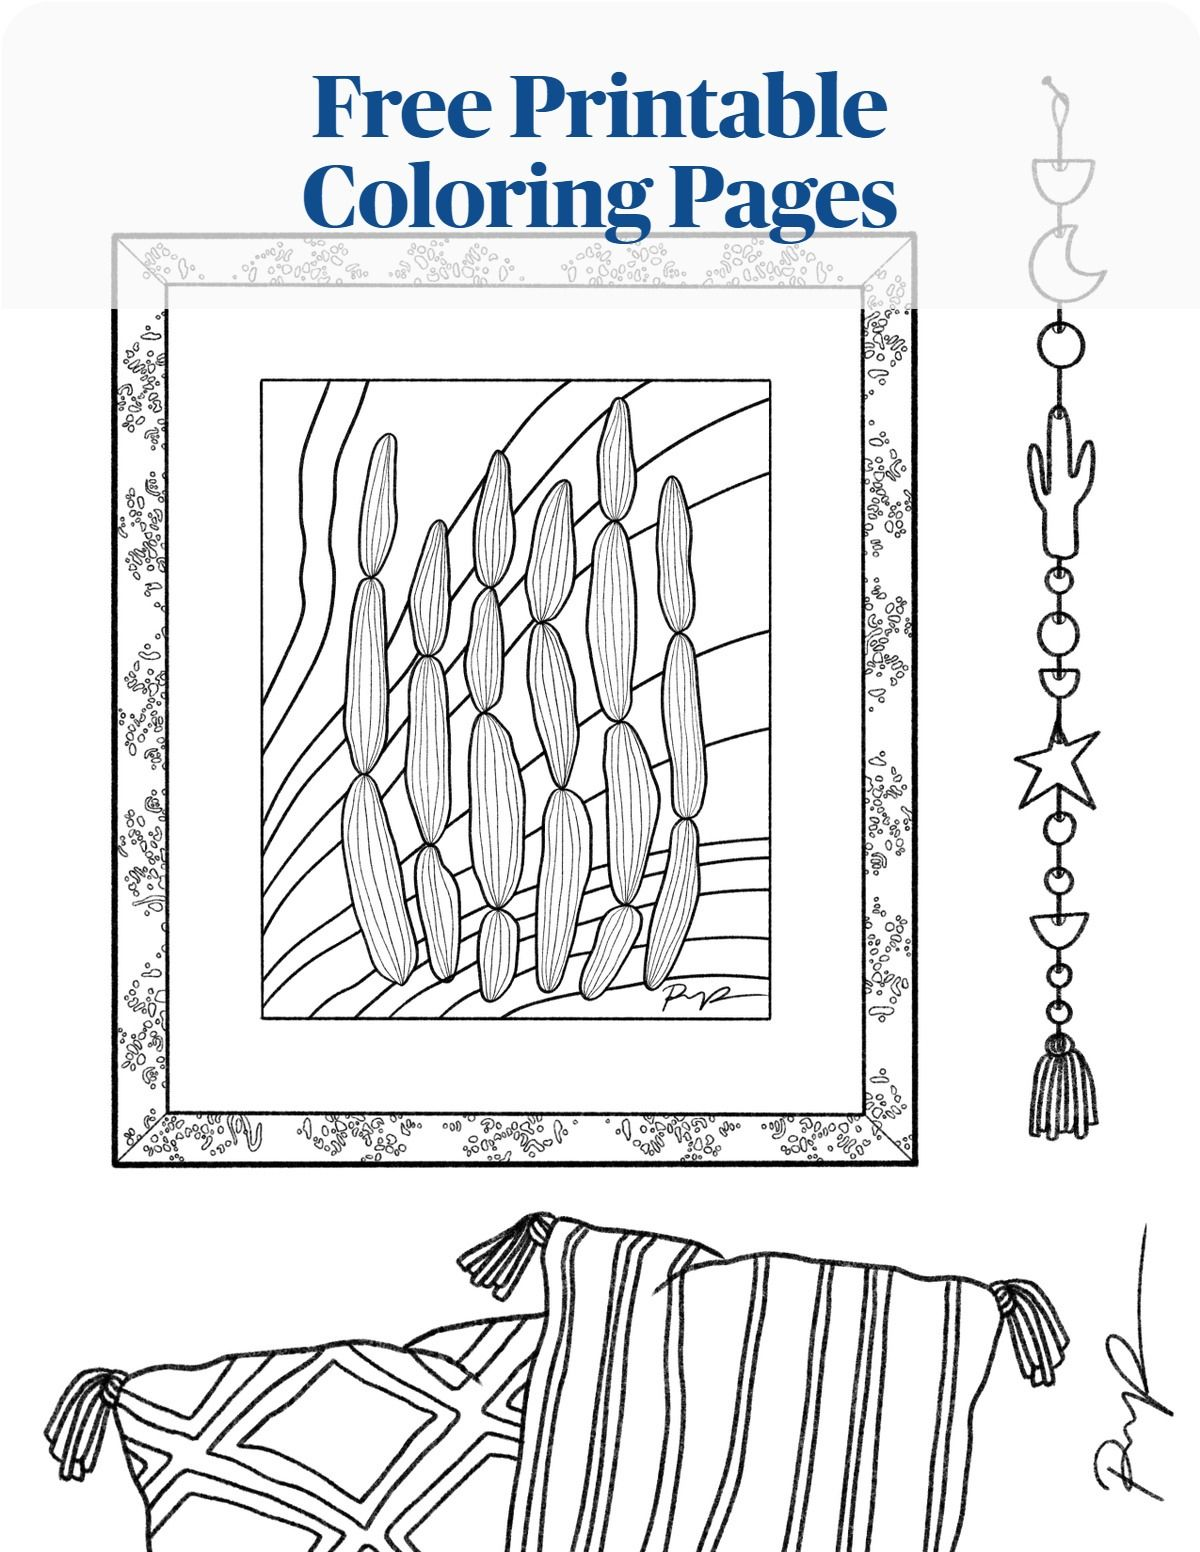 Free Printable Coloring Pages Coloring Pages Free Printable Coloring Pages Unique Coloring Pages